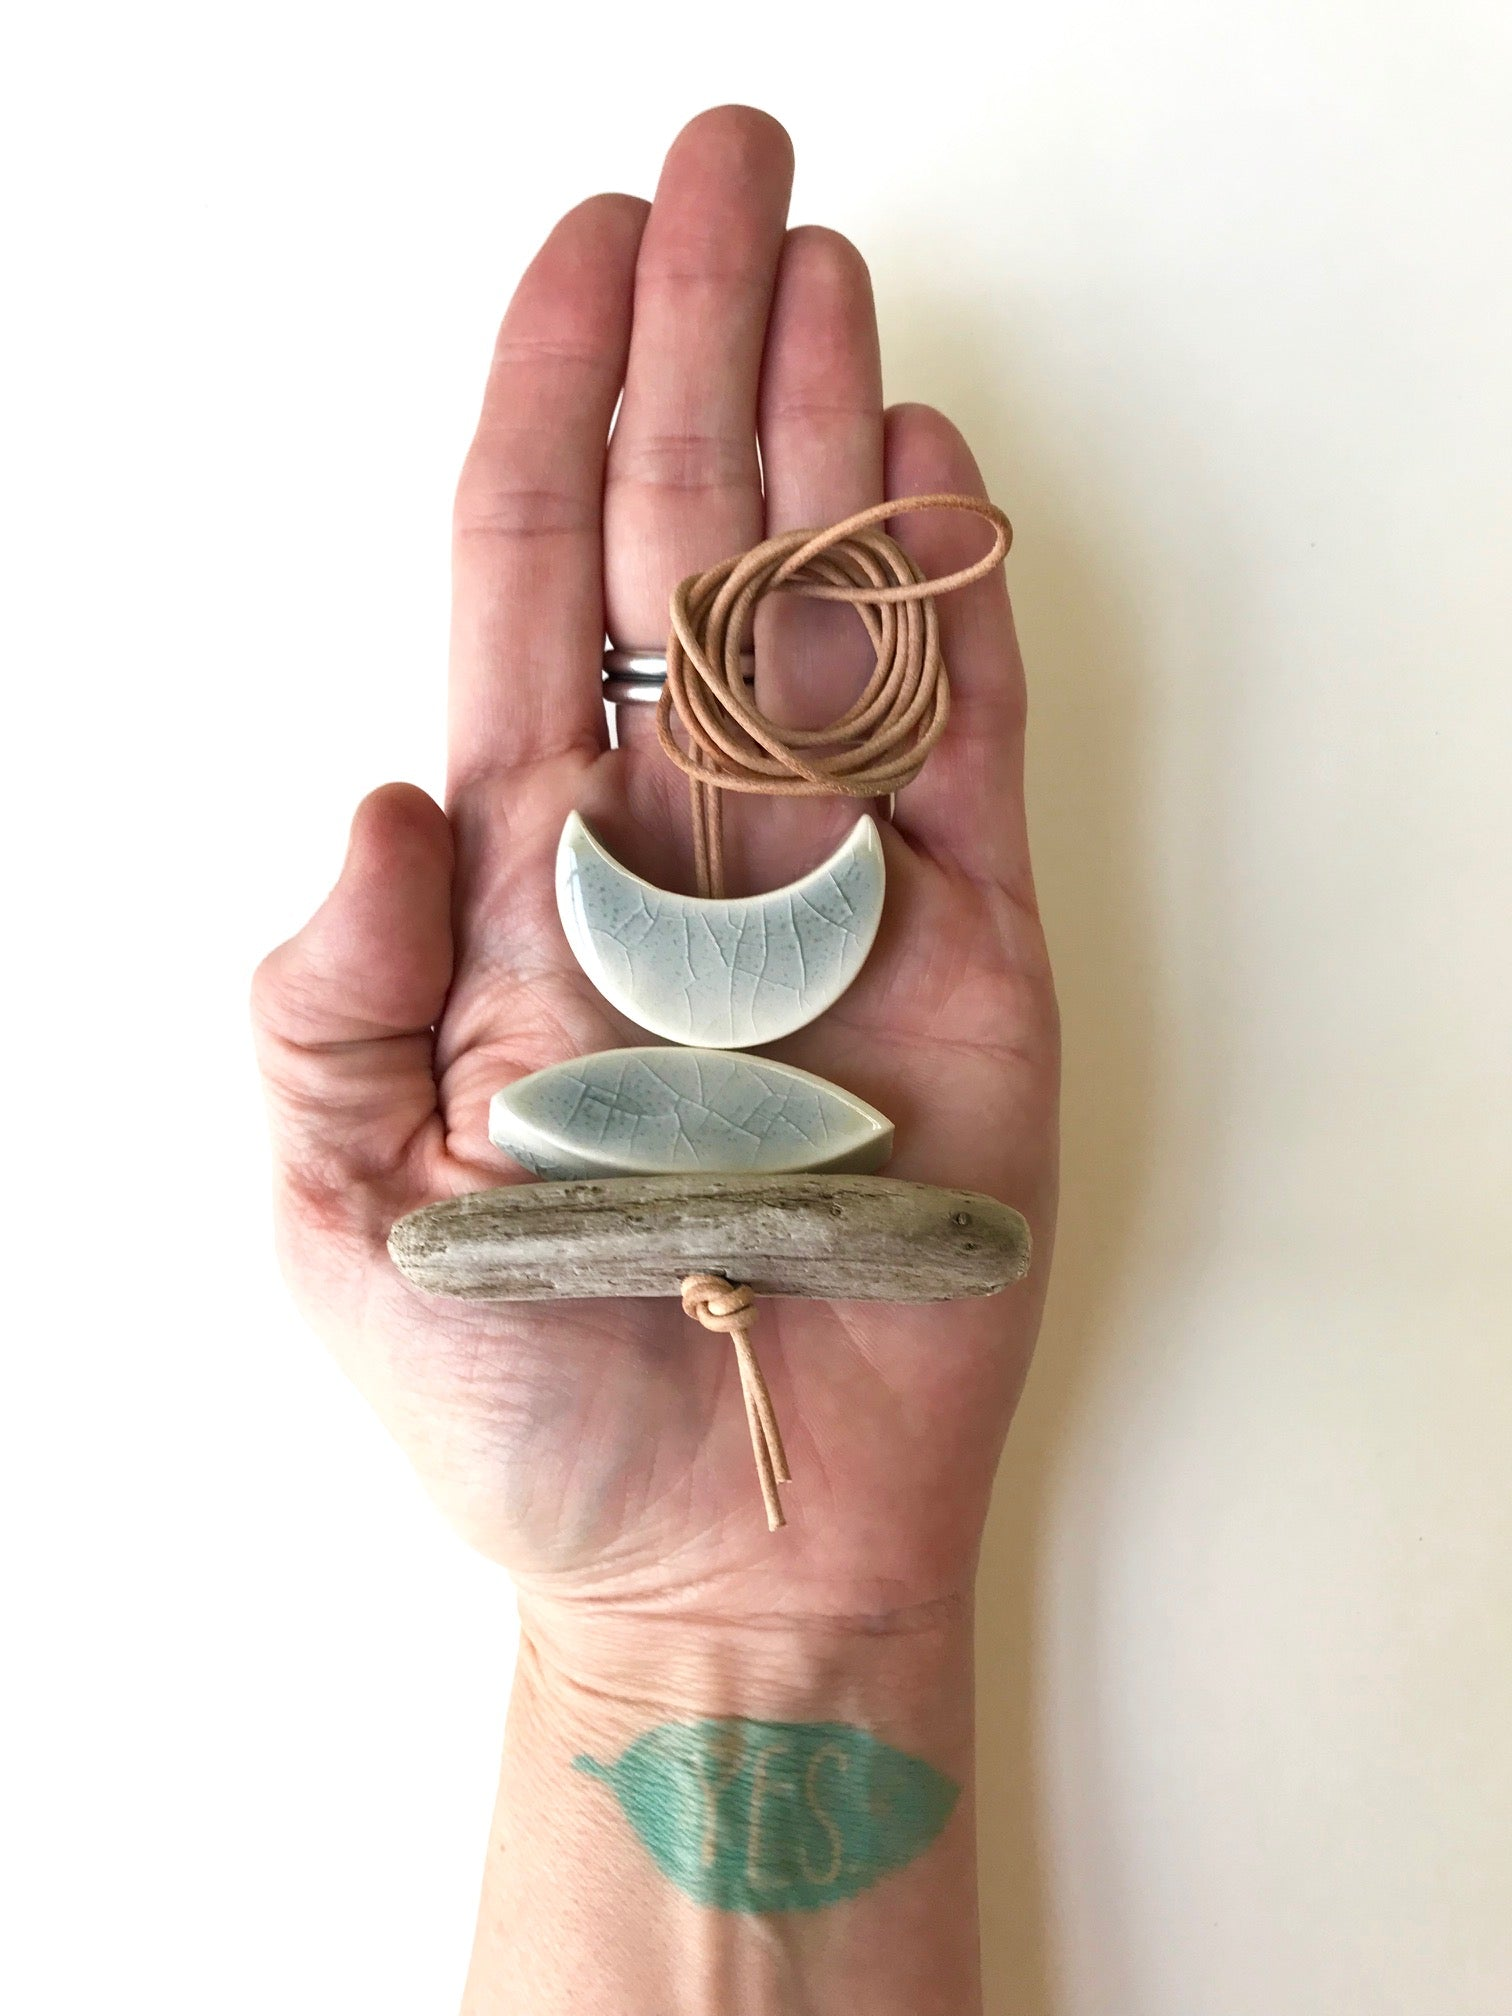 SOLD - 'infinite & ideal' moon meets ocean, one of a kind wearable piece